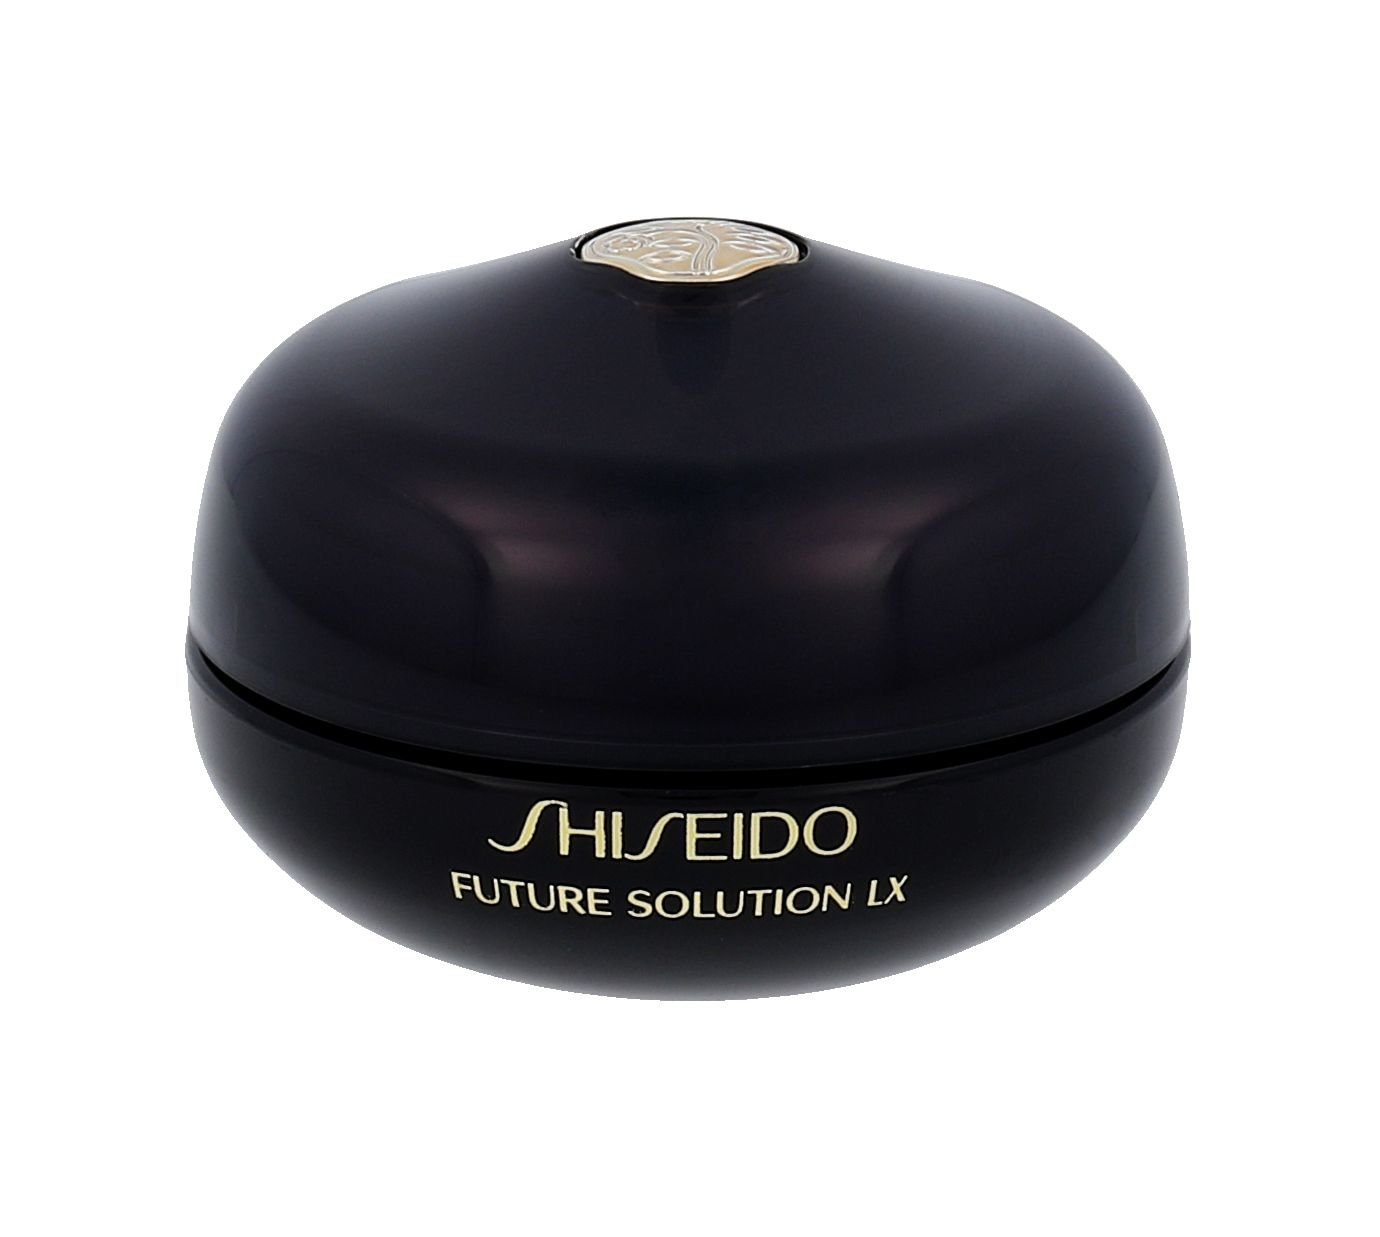 Shiseido Future Solution LX Cosmetic 15ml